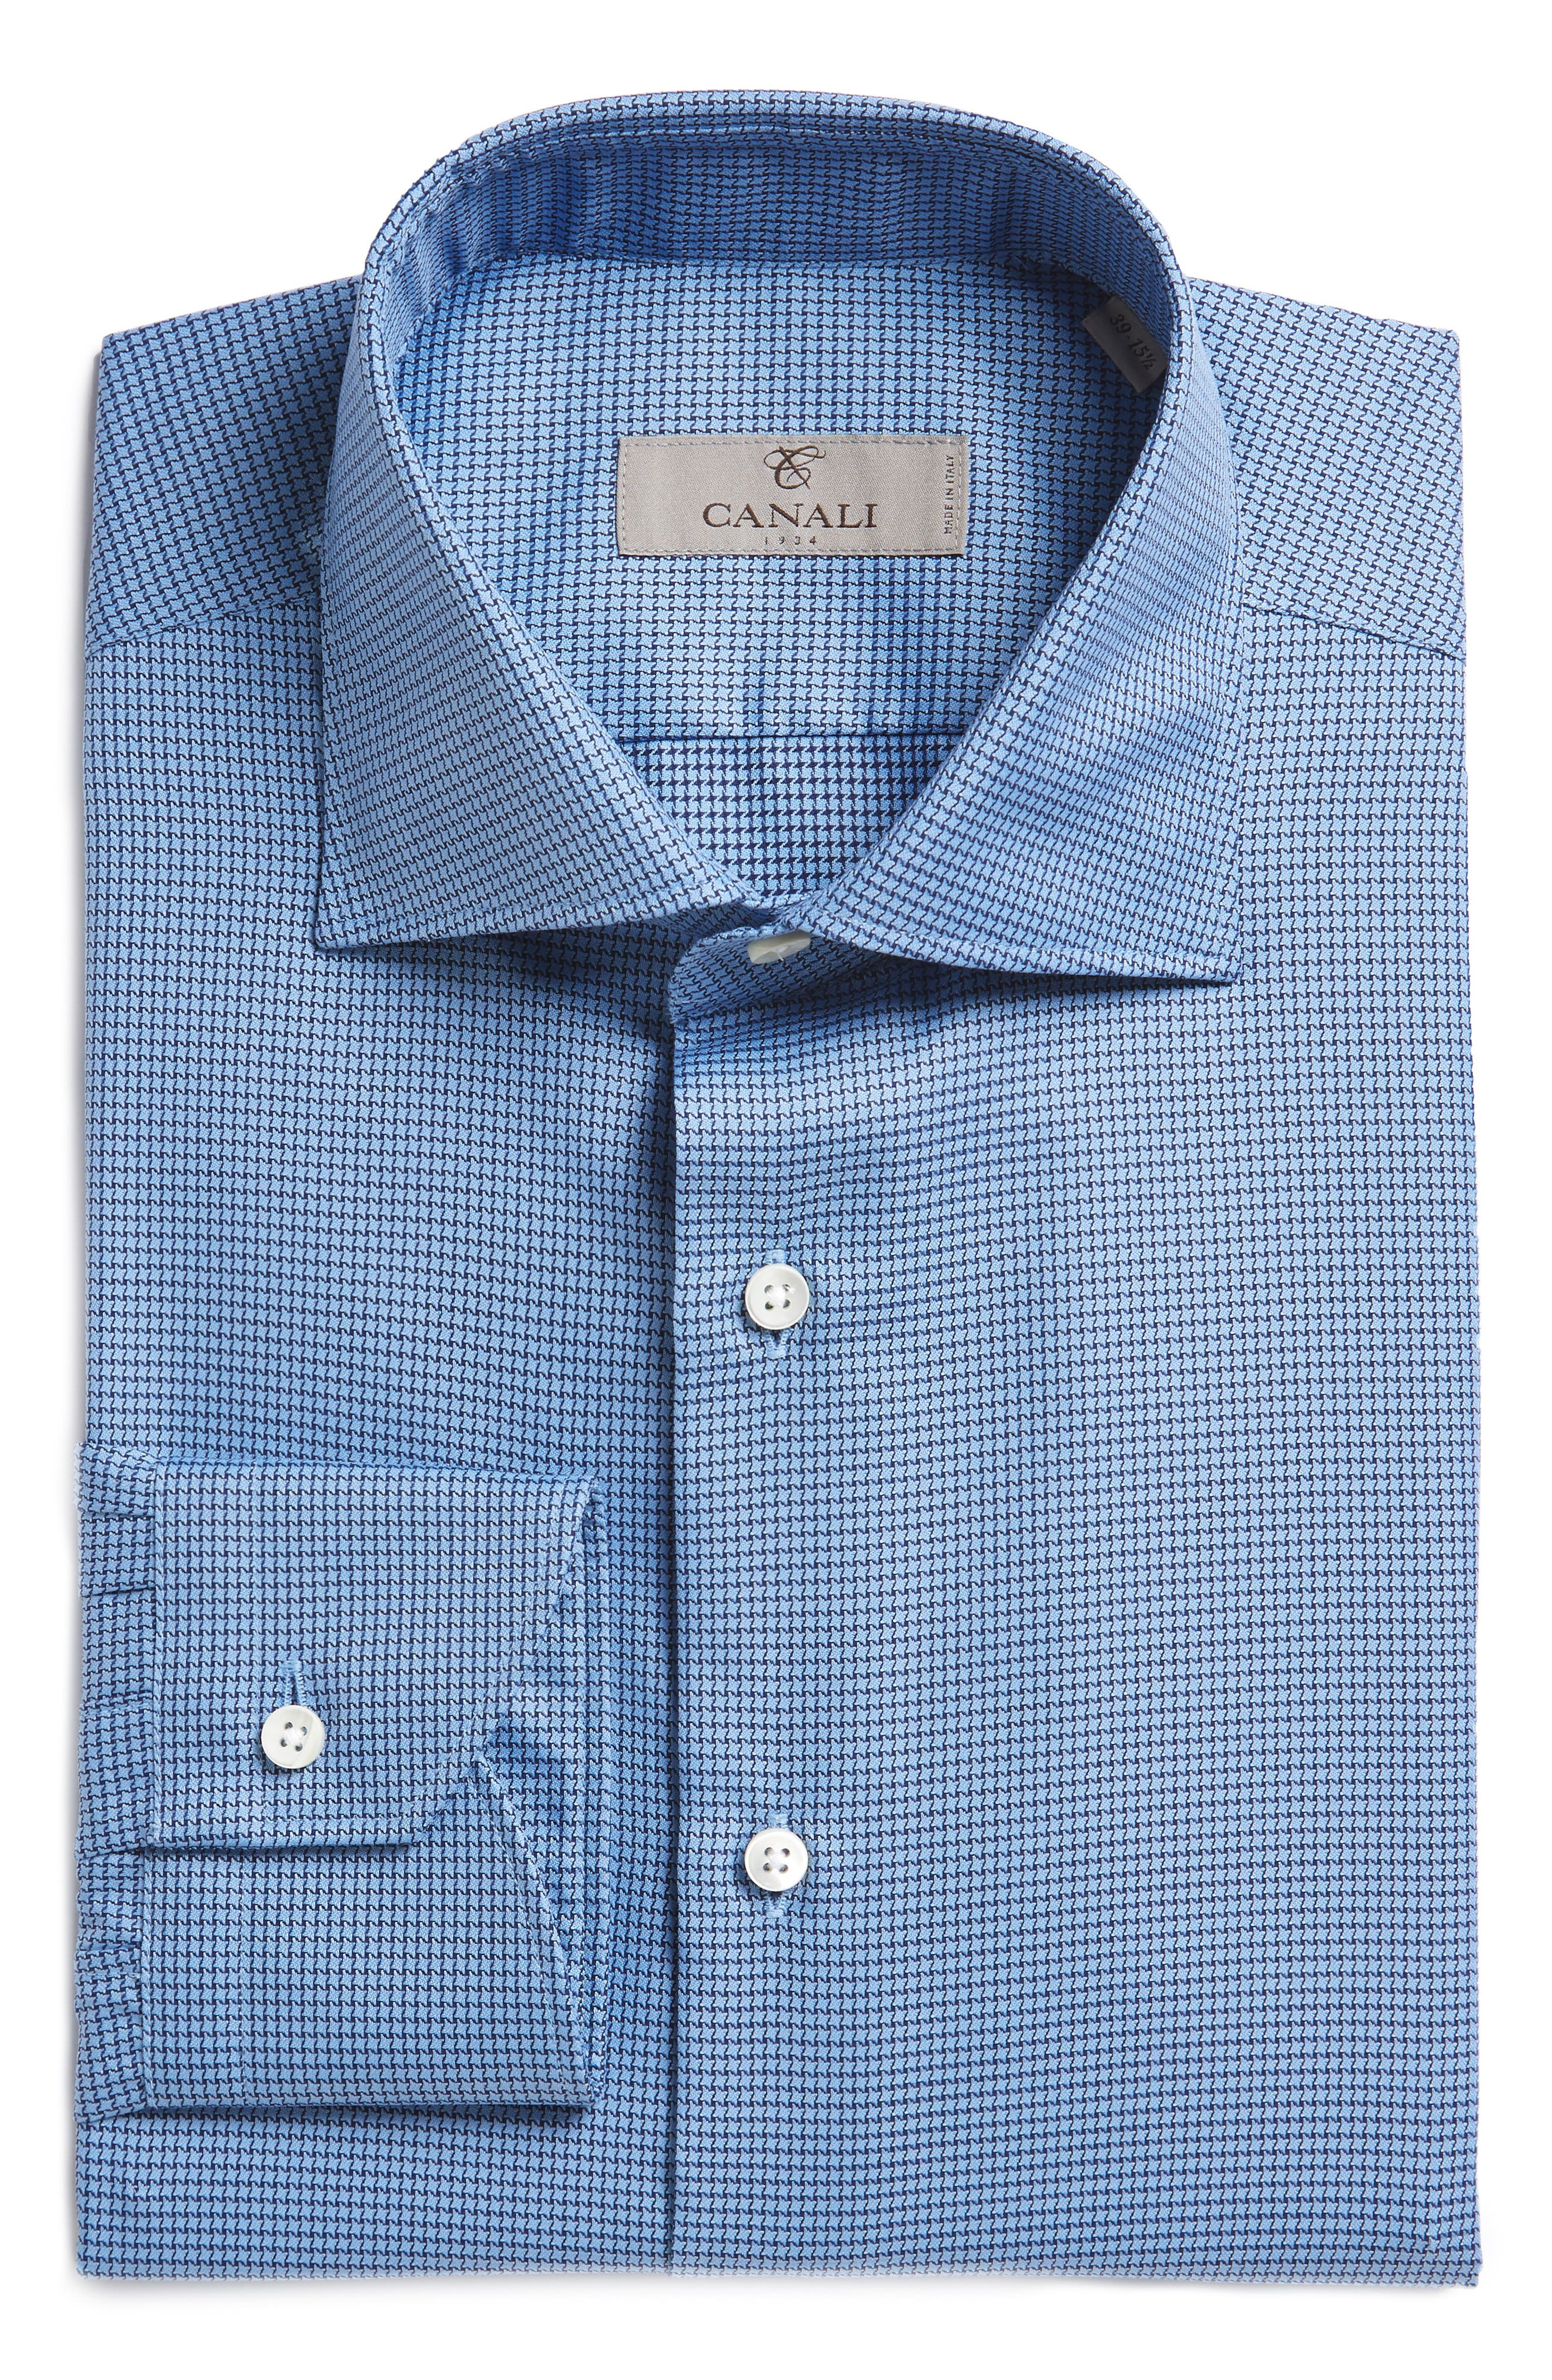 Main Image - Canali Regular Fit Houndstooth Dress Shirt